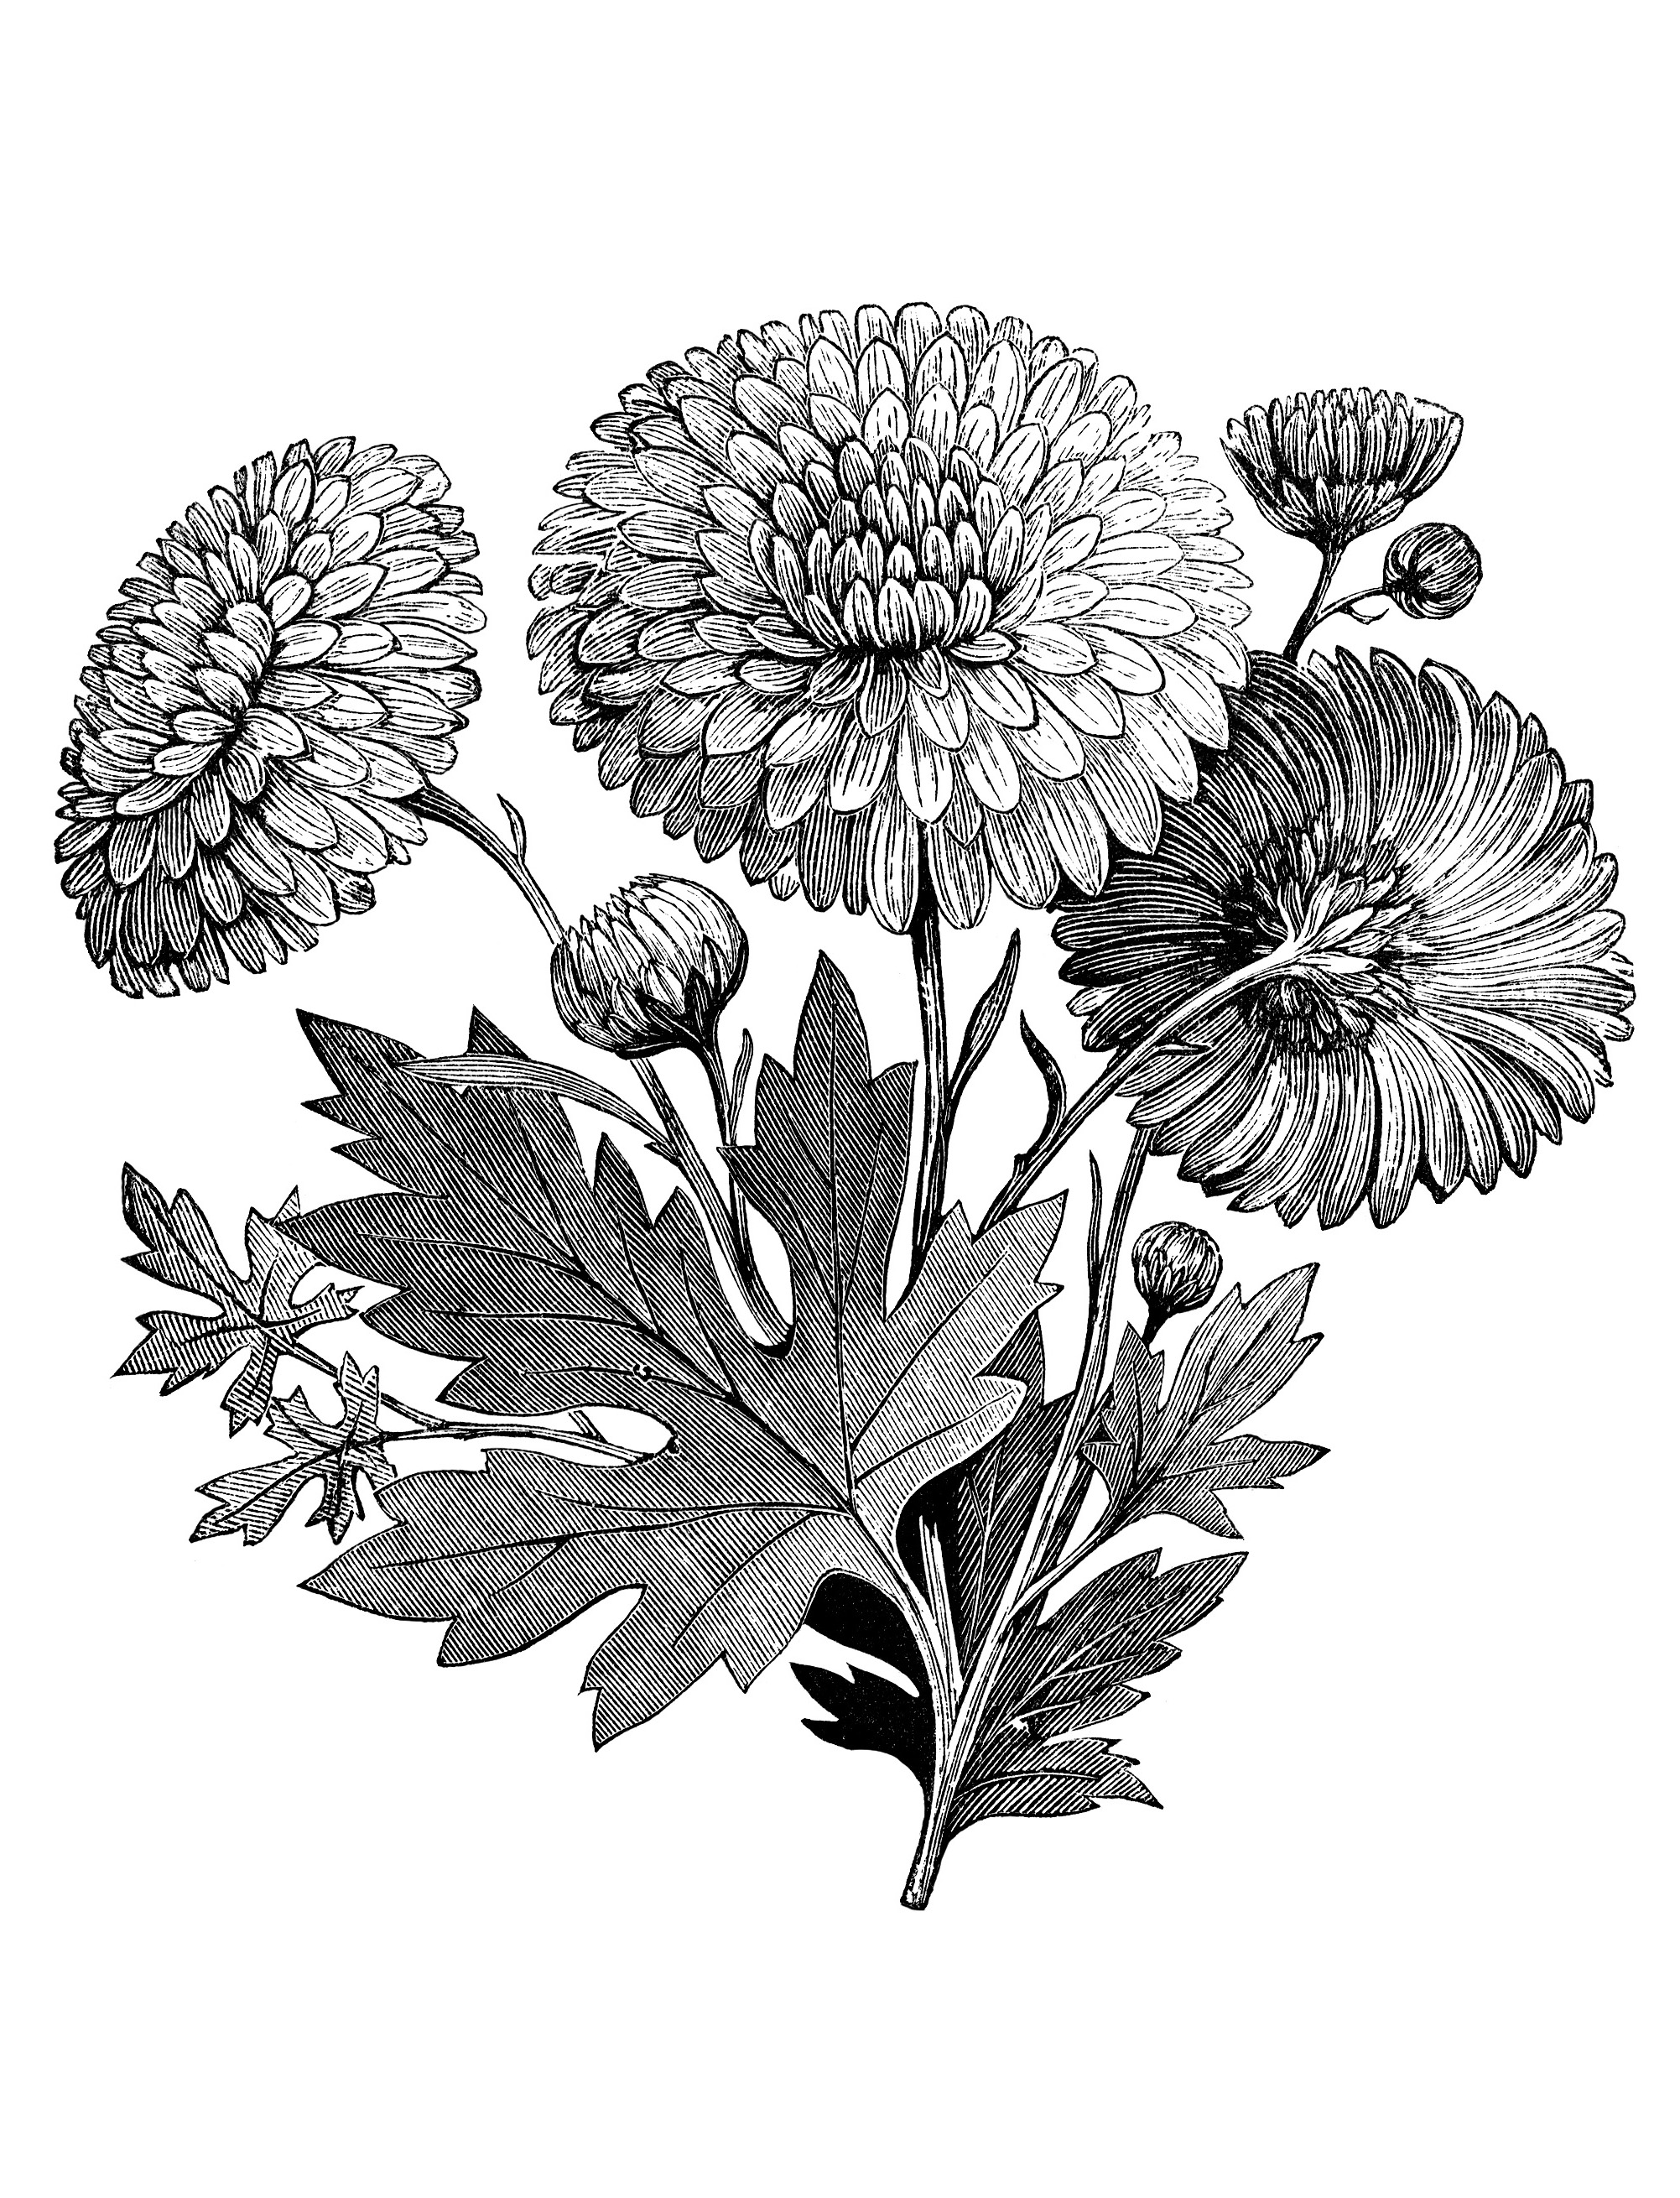 Colouring in pictures of flowers - Coloring Adult Vintage Flower Garden Clip Art Black And White